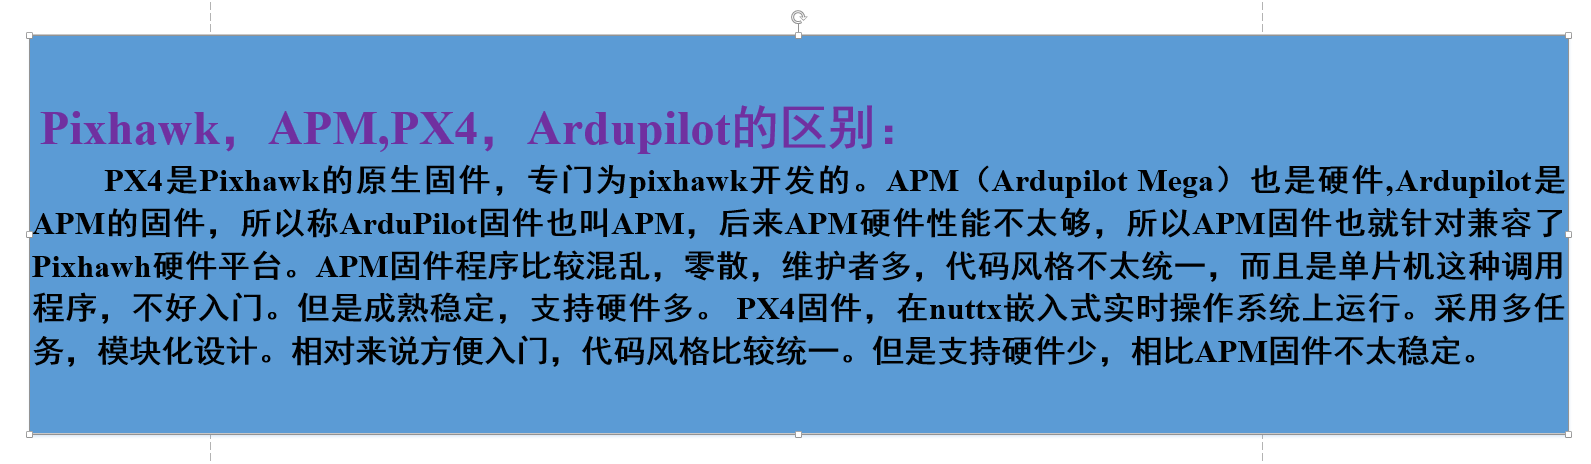 Introduction to PX4 and Ardupilot (Chapter 1: Architecture and